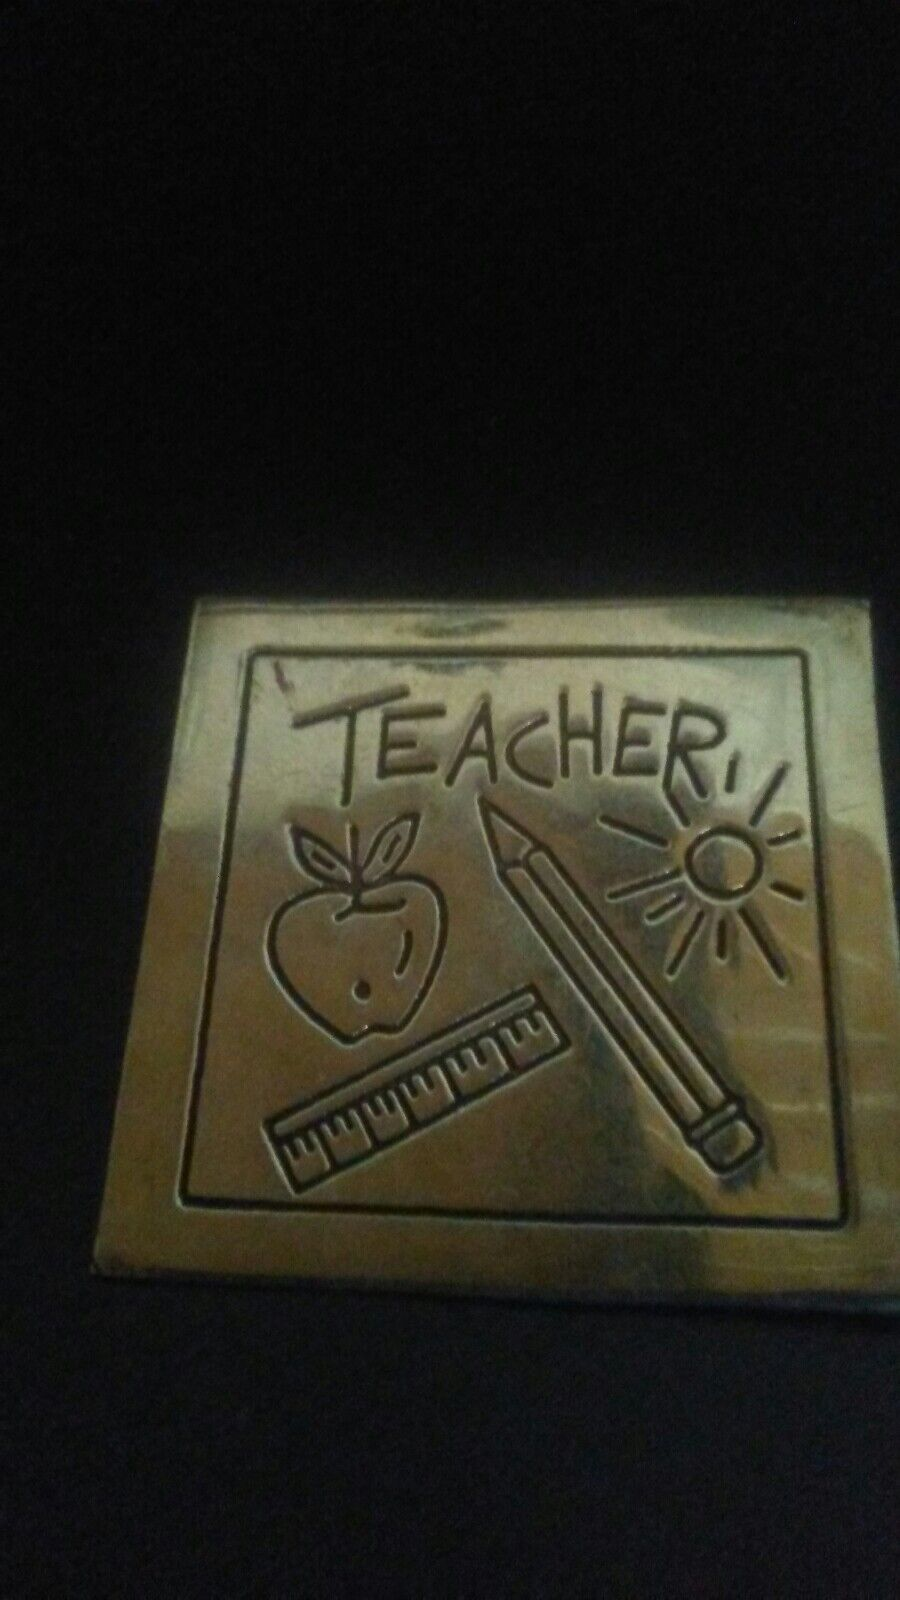 925 Streling Teacher Pendant Brooch  Signed Mexico tm-138